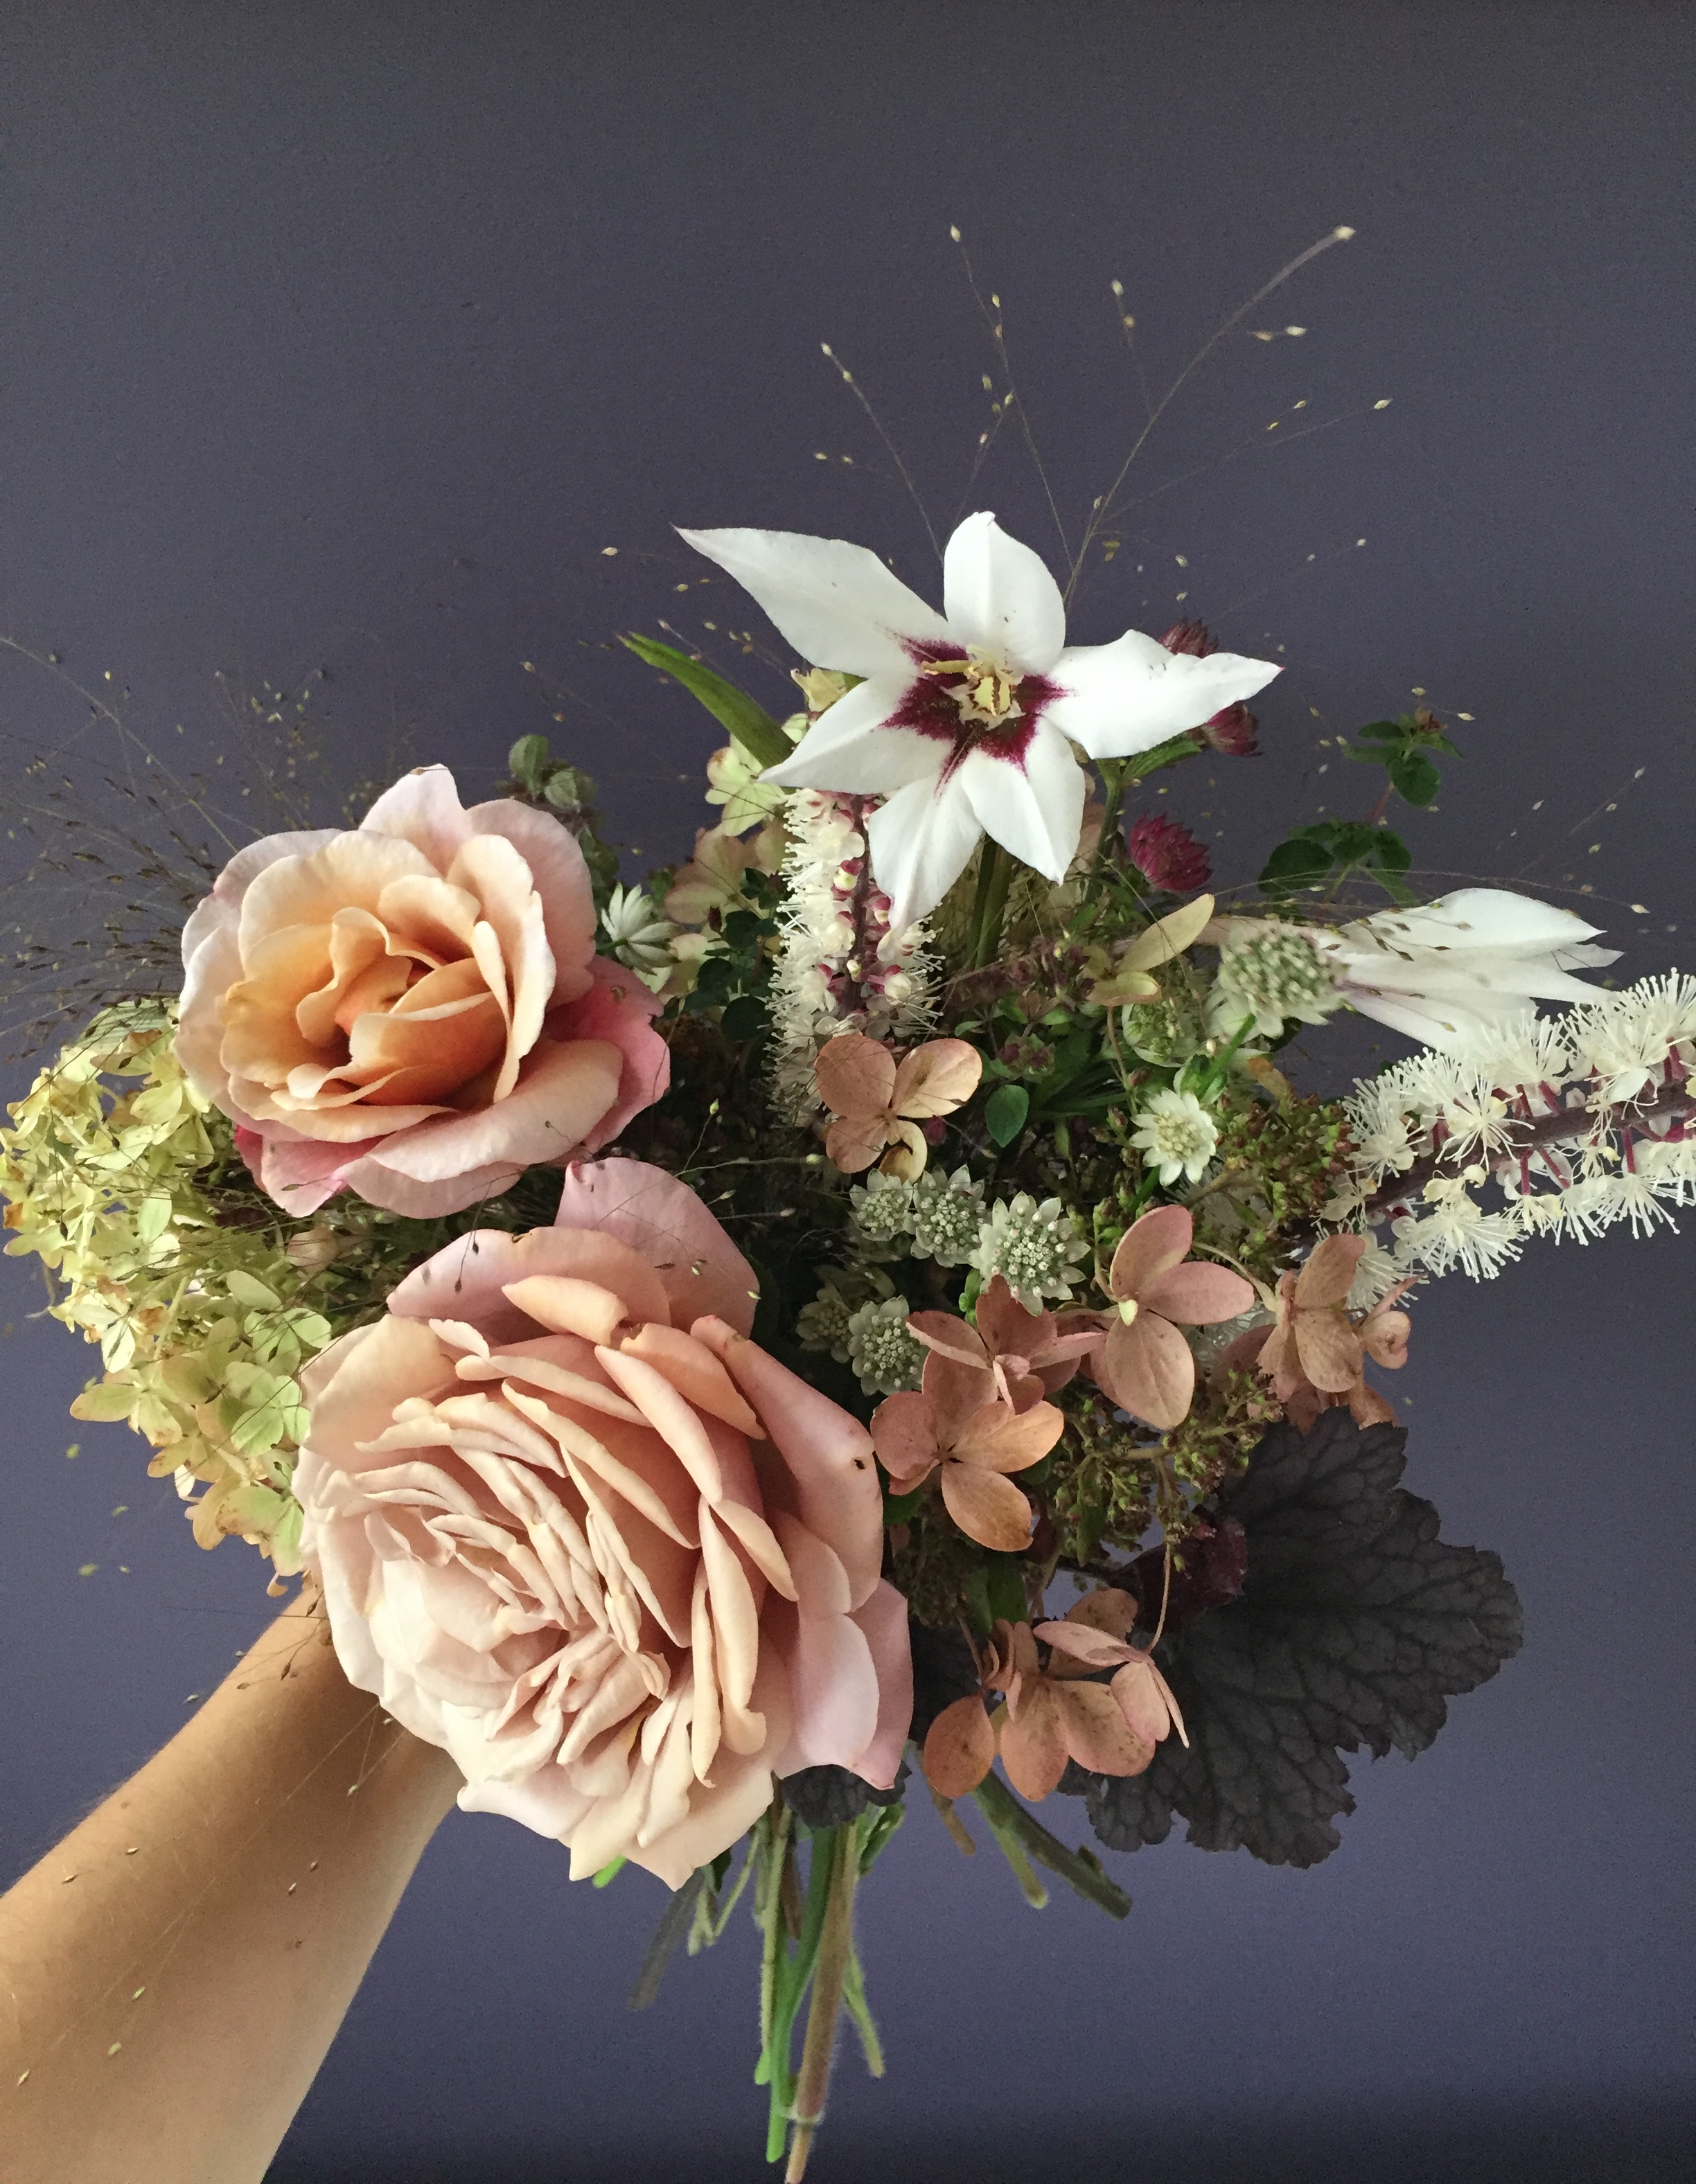 Early October - roses, hydrangea, heuchera, astrantia, actea, acidanthera, oregano, frosted explosion grass,